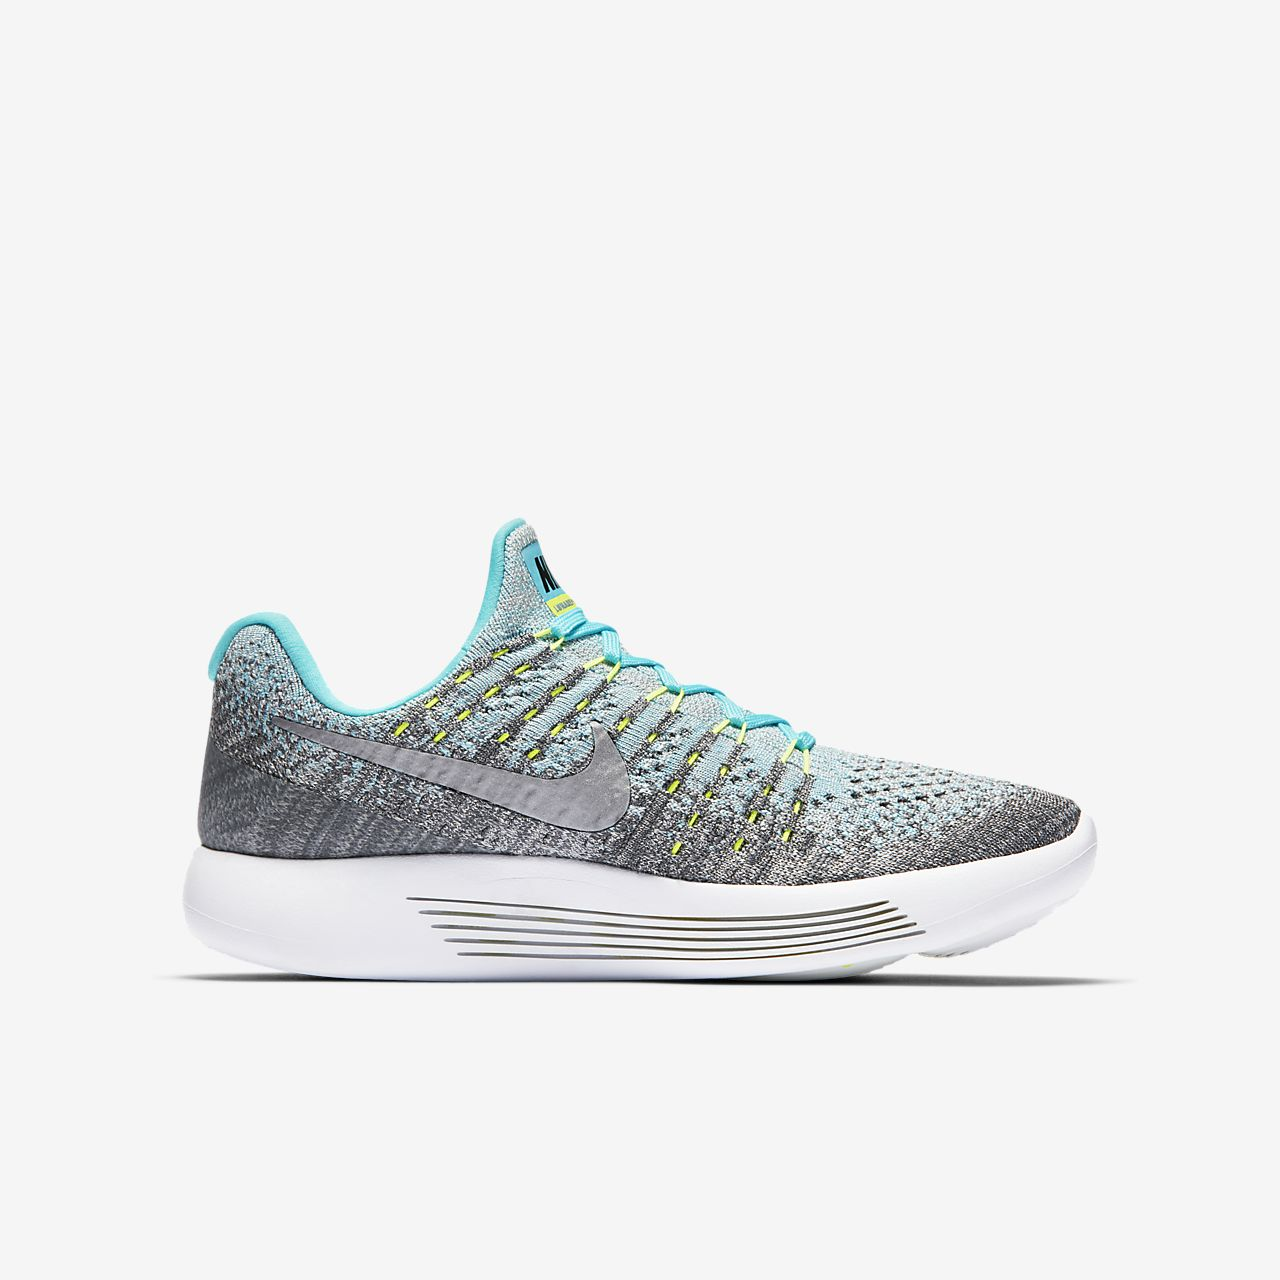 ... Nike LunarEpic Low Flyknit 2 Older Kids' Running Shoe